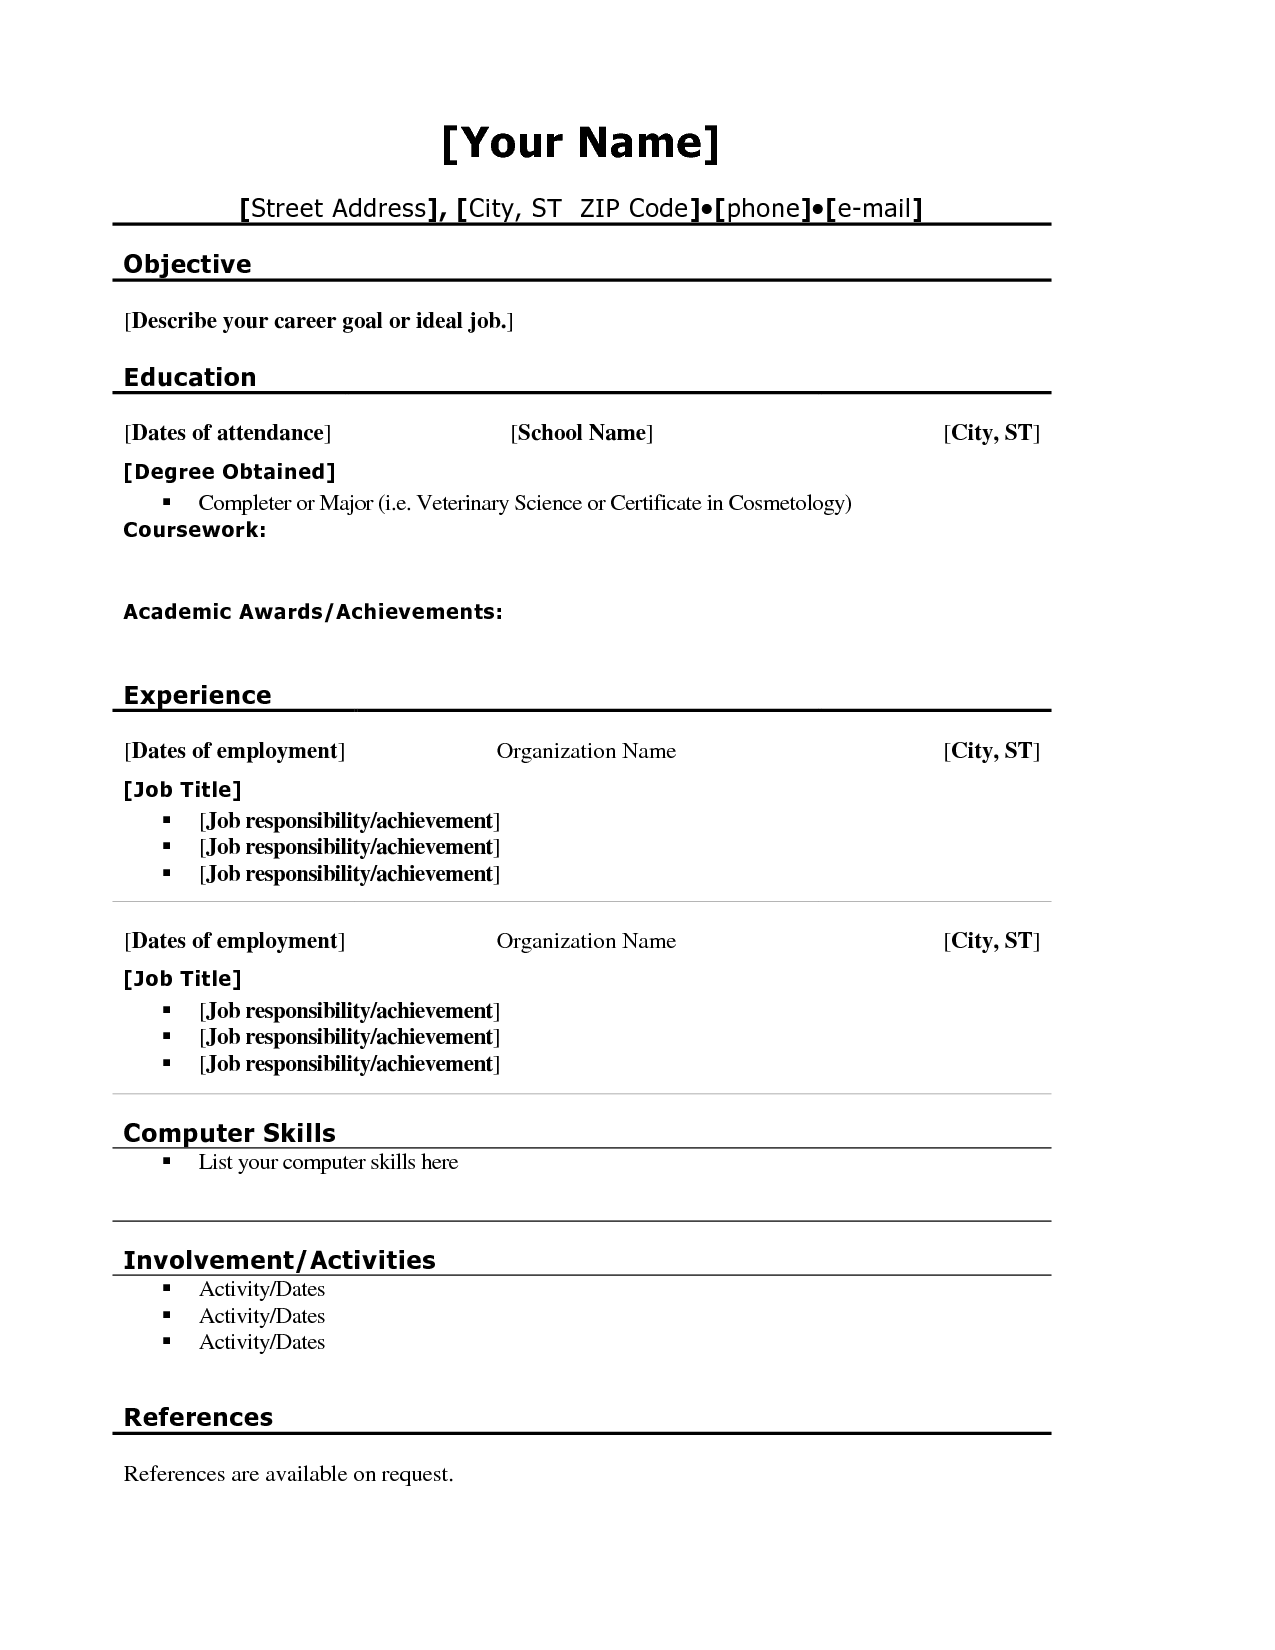 Resume Outline Examples Resume For High School Graduate Resume Builder Resume Templates